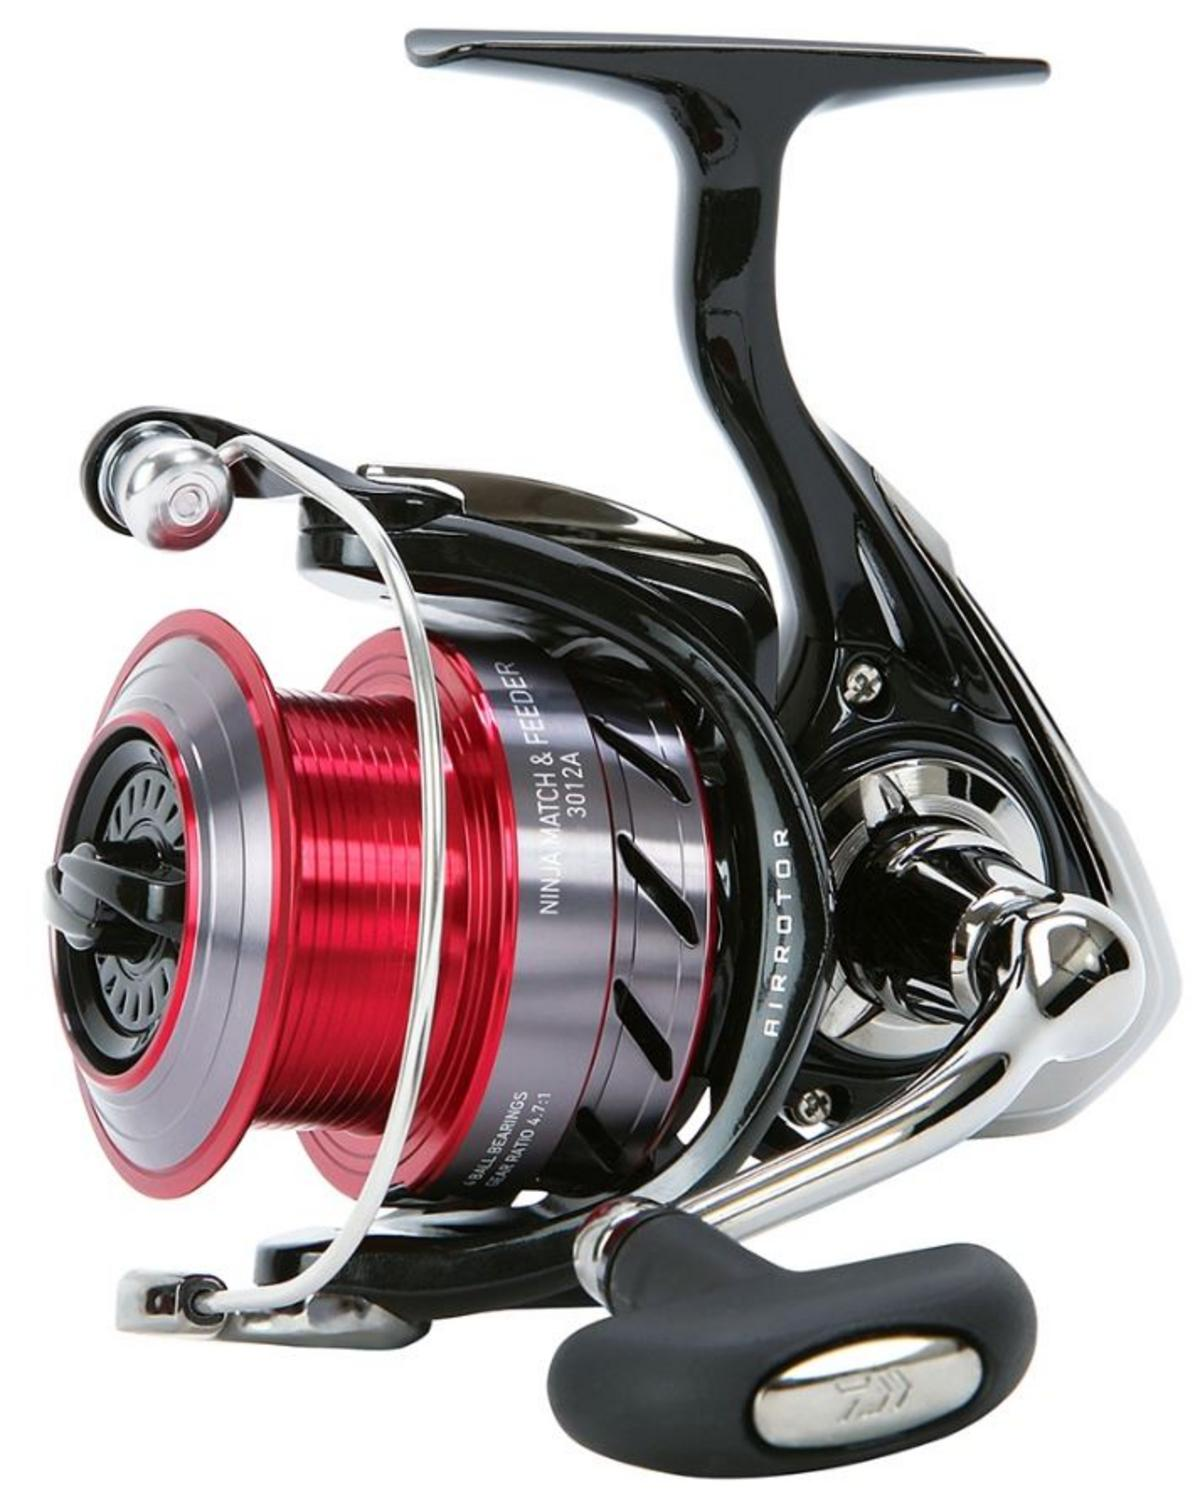 New Daiwa Ninja Spinning Fishing Reel - All Models